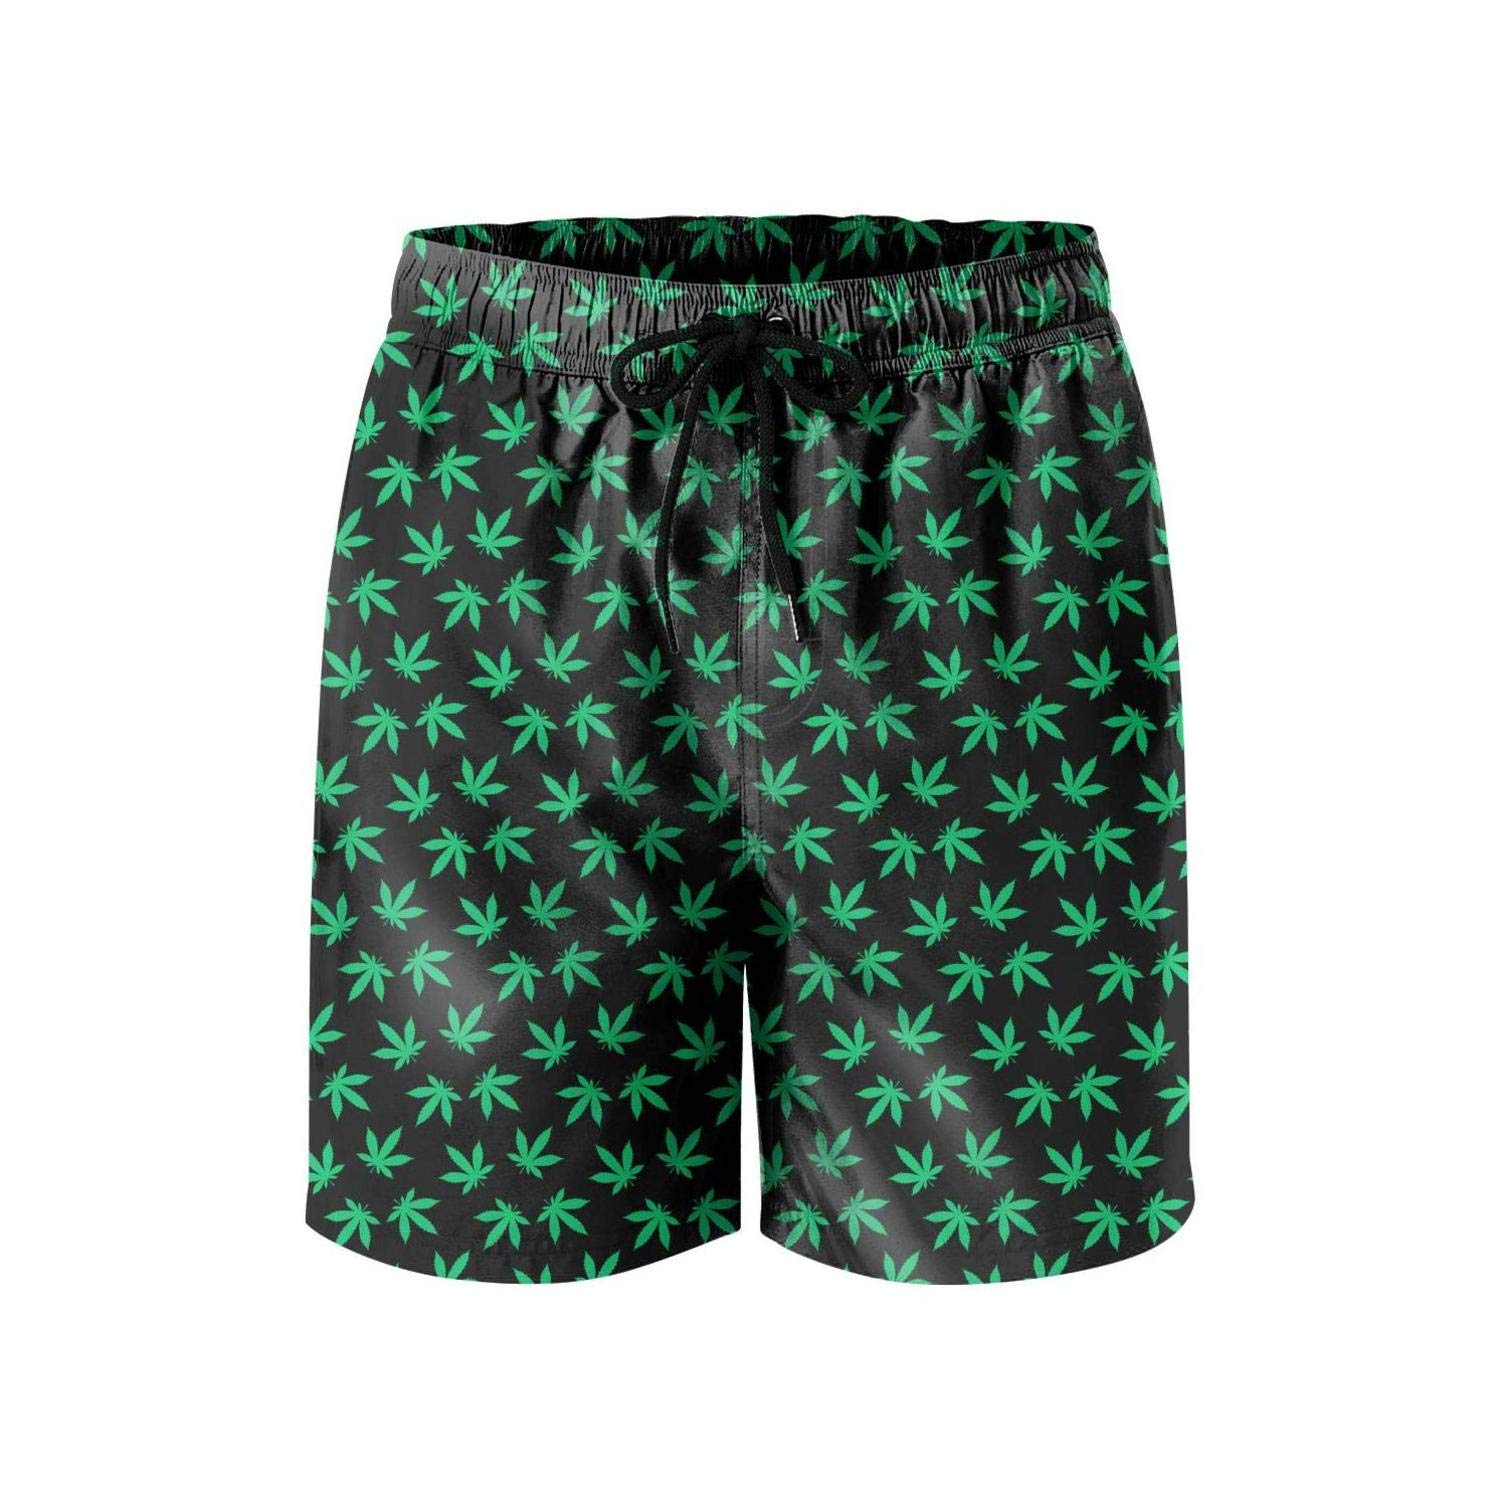 Microfiber Cannabis Leaf Quick Dry Swimming Trunks Mens Shorts Printed